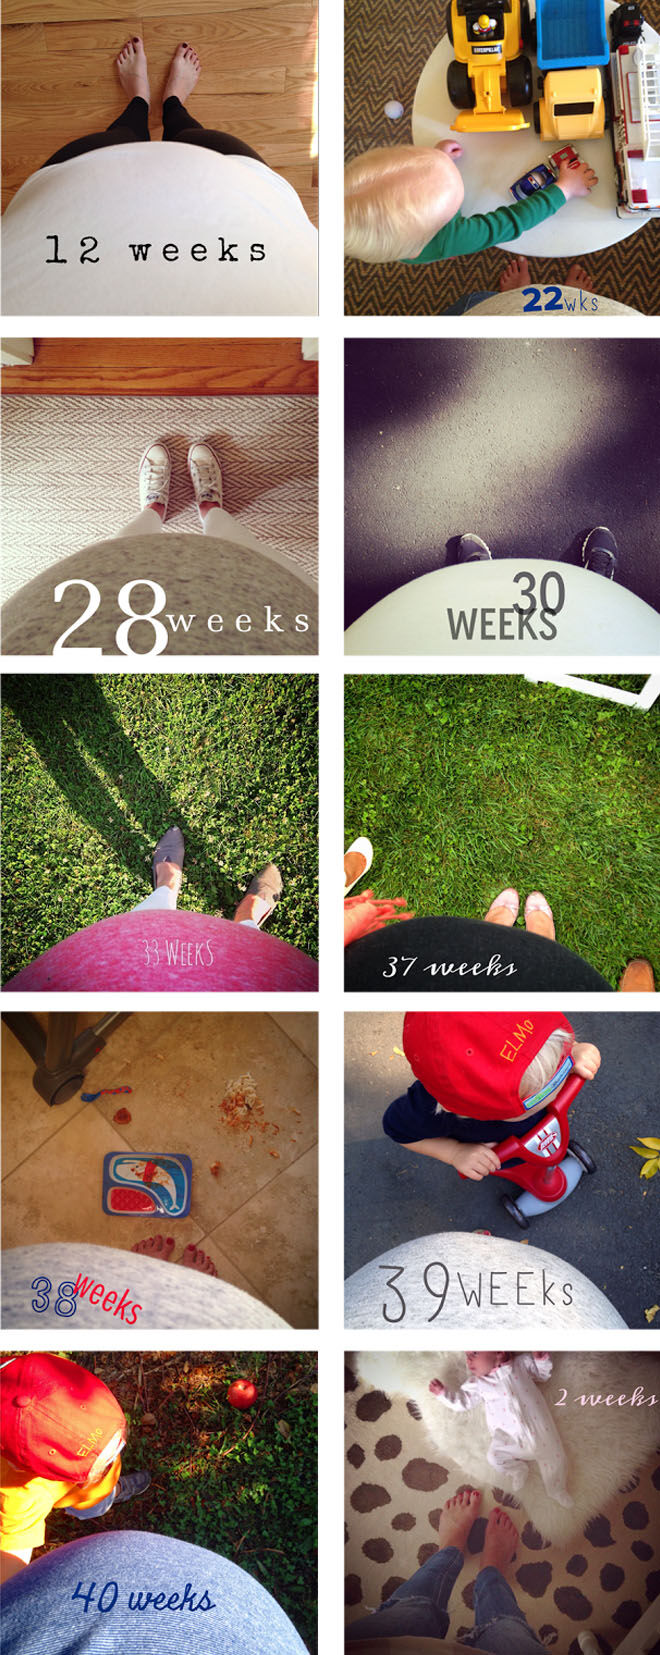 From where I stand pregnancy photos